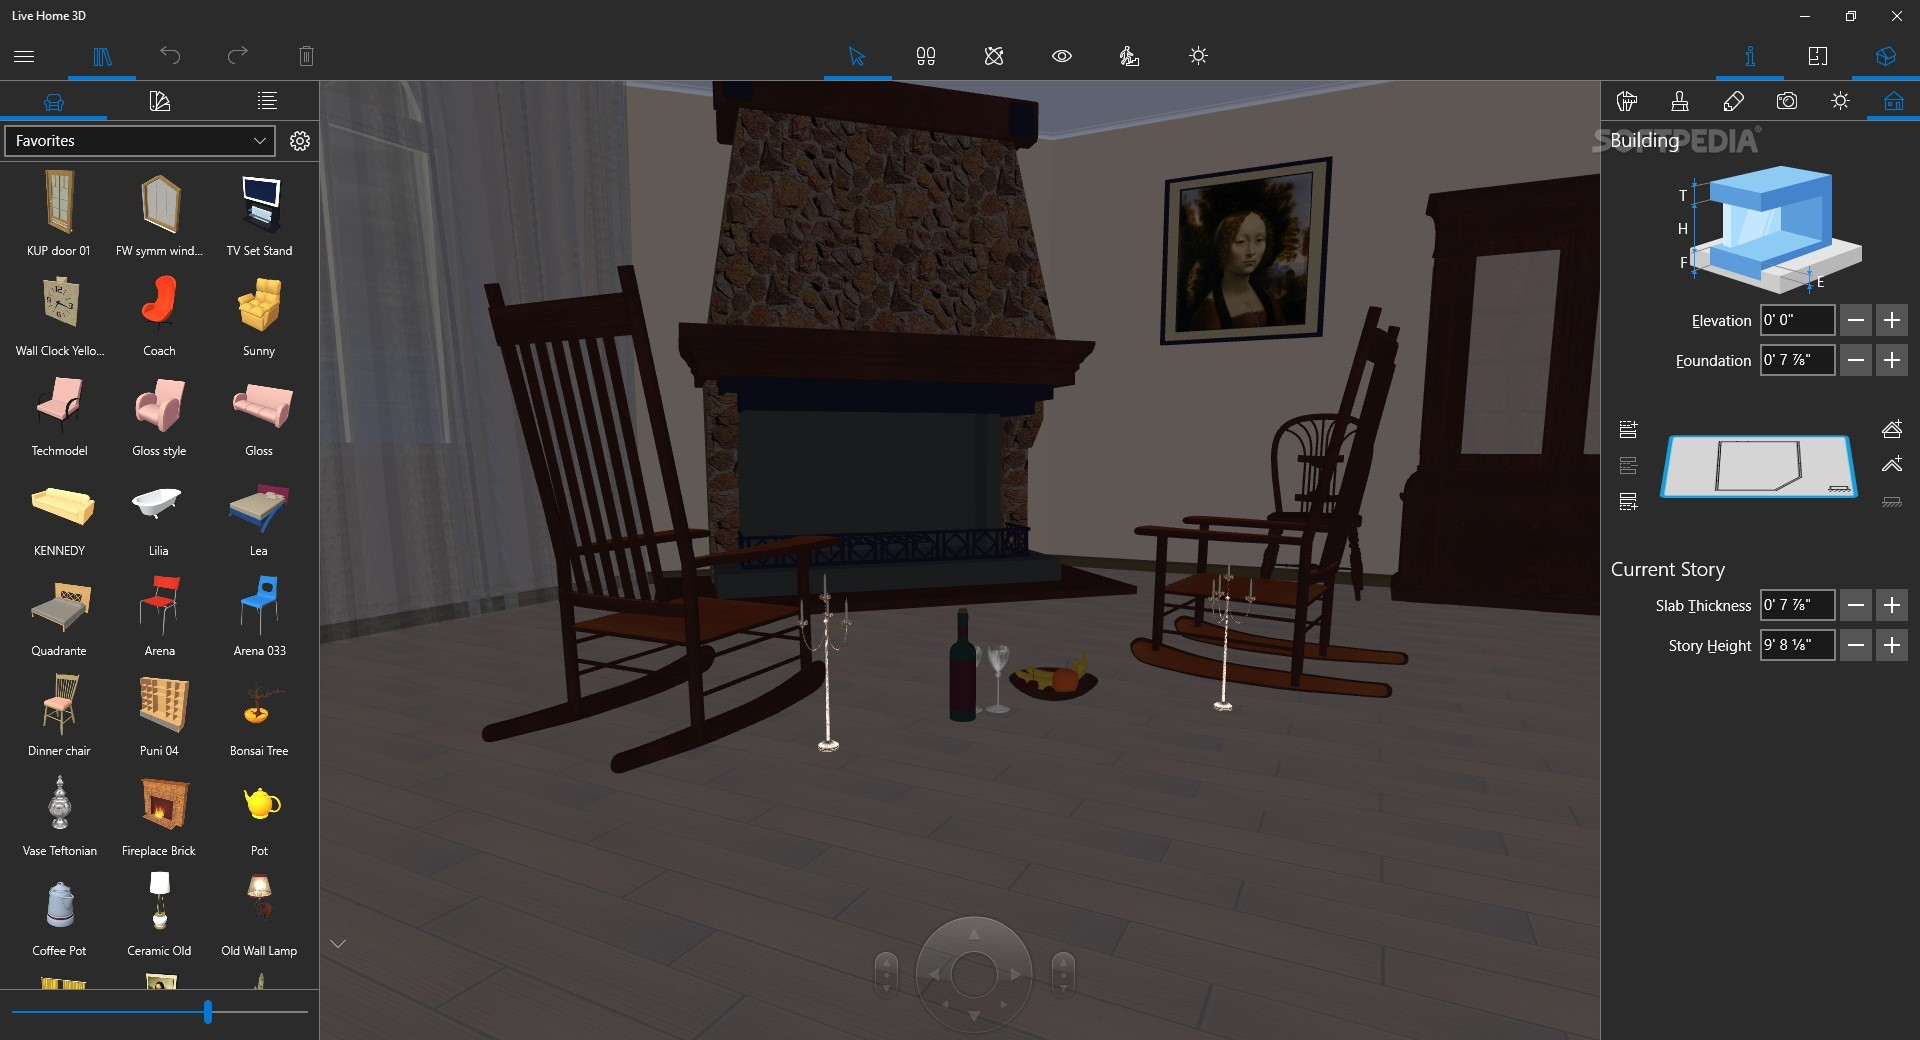 live home 3d for windows 10